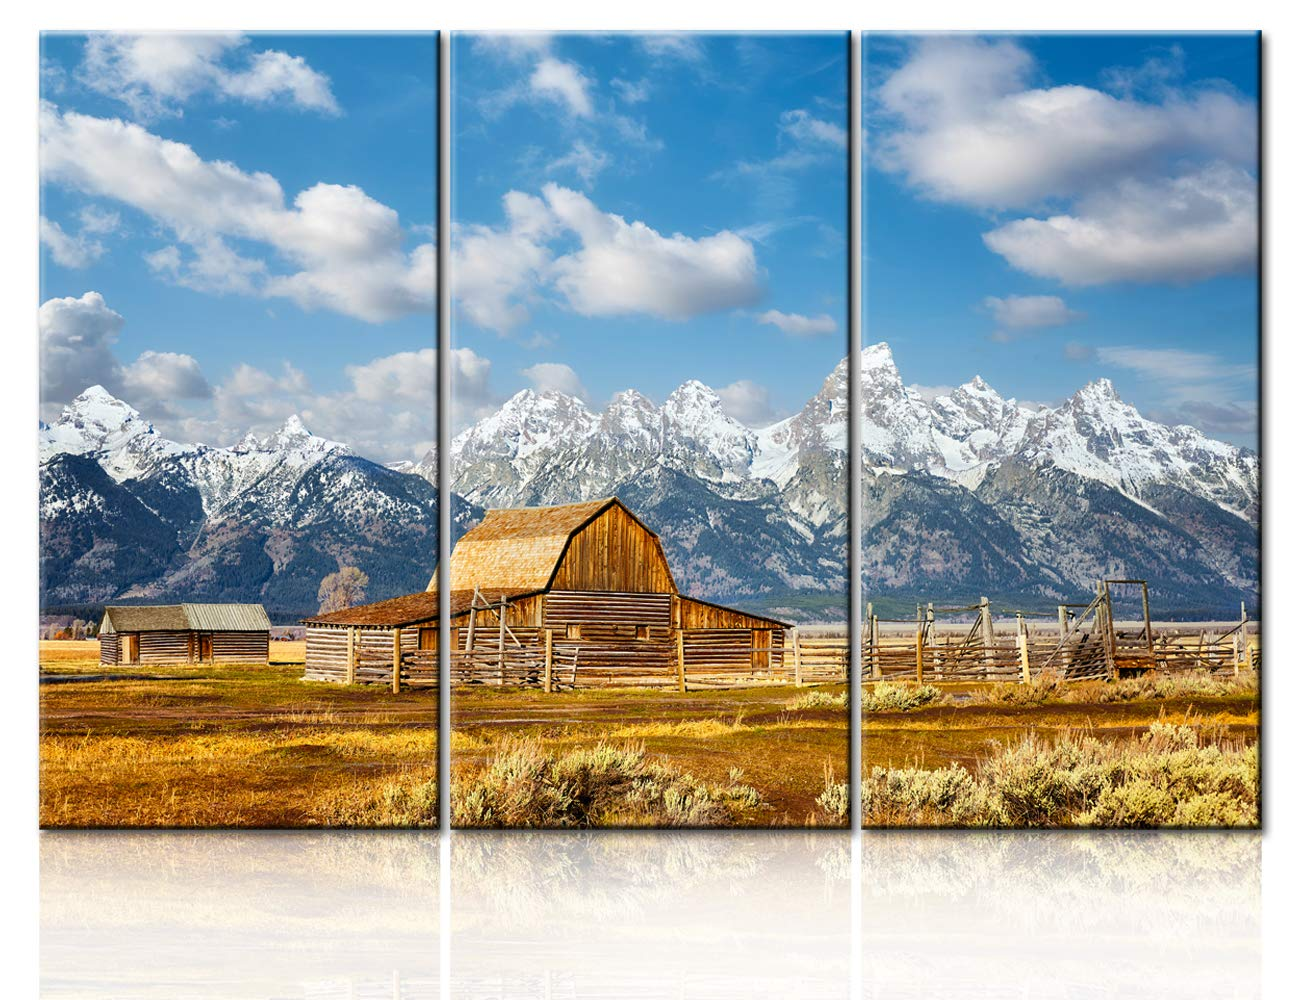 Autumn Season Canvas John Moulton Barn Pictures for Living Room 3 Panel Canvas Country Paintings Cabin Wyoming,USA Wall Art Modern Artwork Home Decor ations Wooden Framed Ready to Hang(28''x42'')